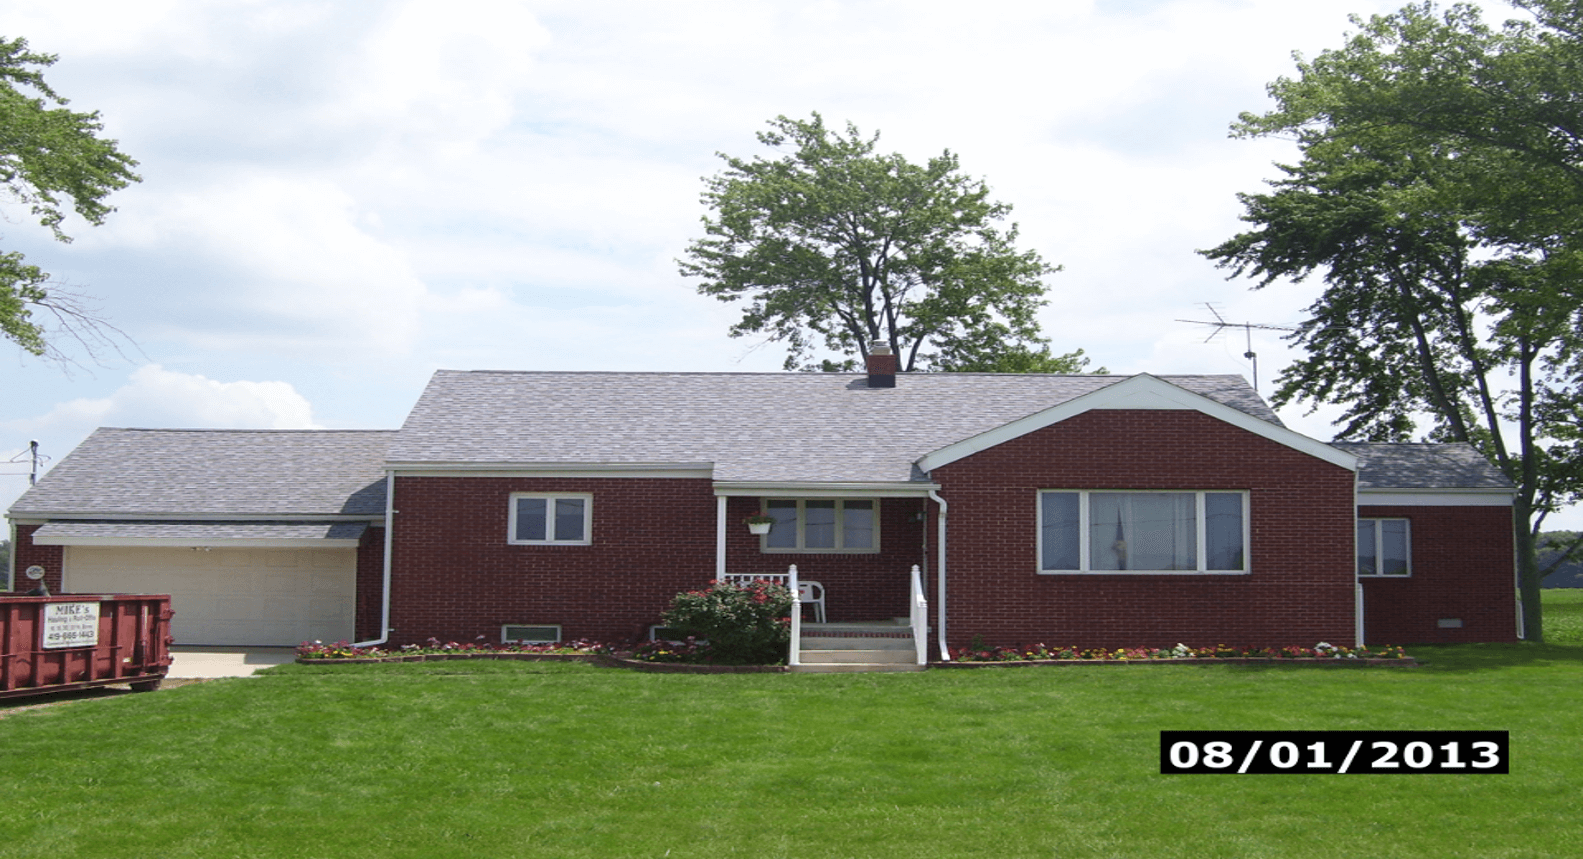 This house look great with its freshly installed Owens Corning Roof!